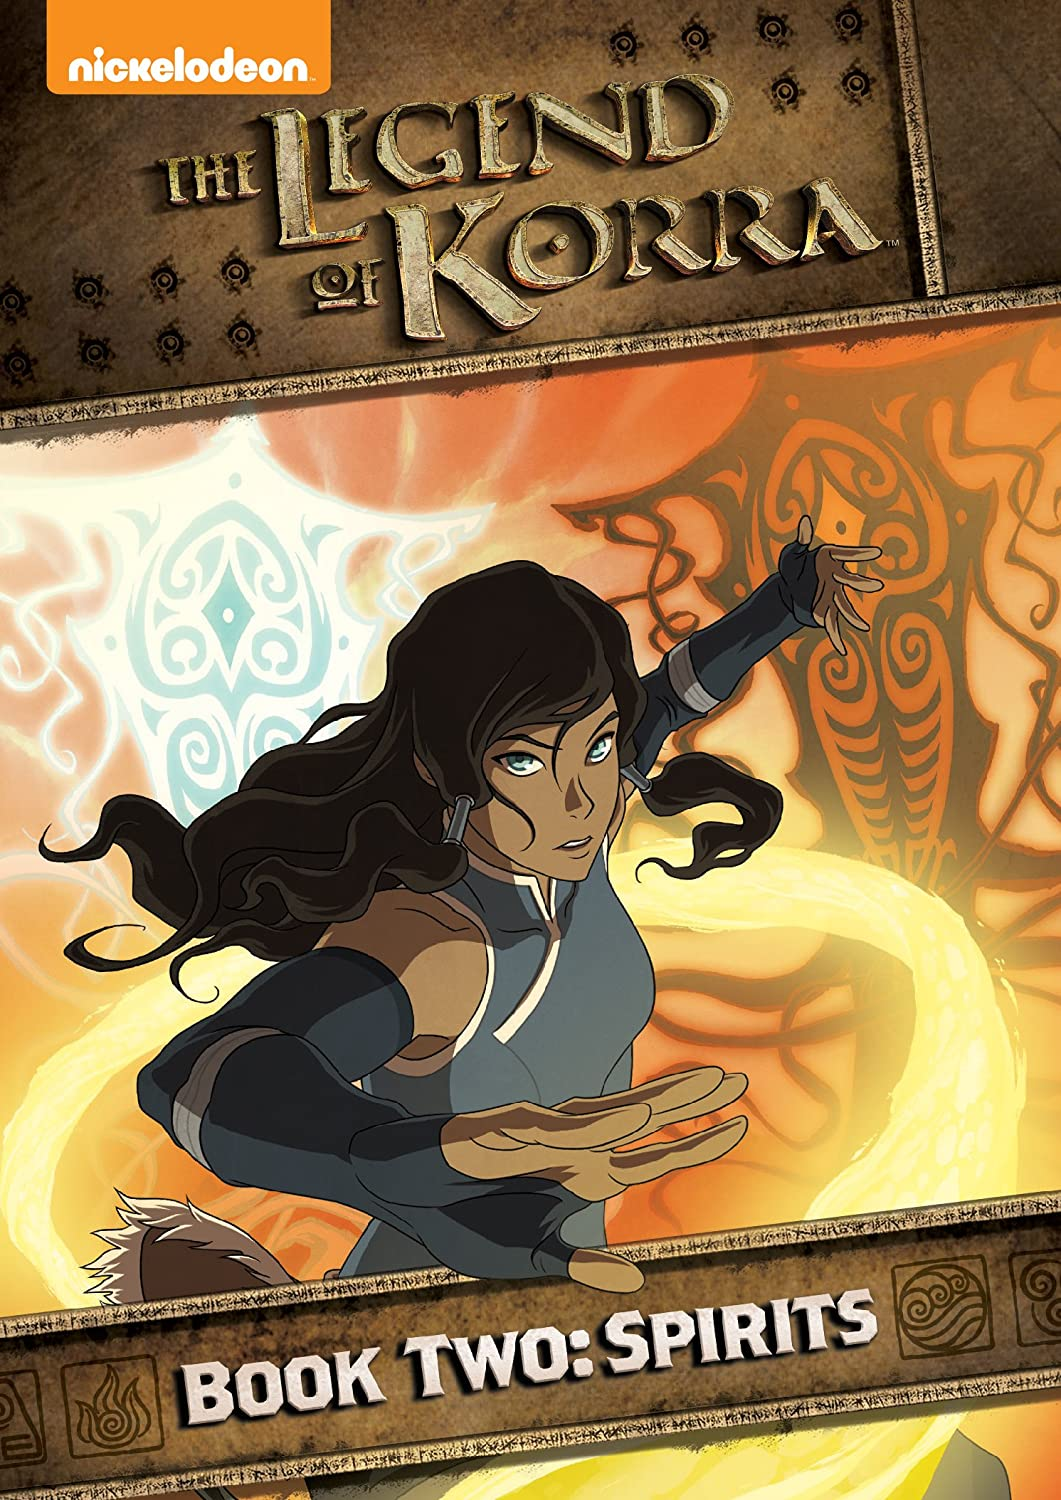 http://www.amazon.com/Legend-Korra-Book-Two-Spirits/dp/B00F8PTBLQ/